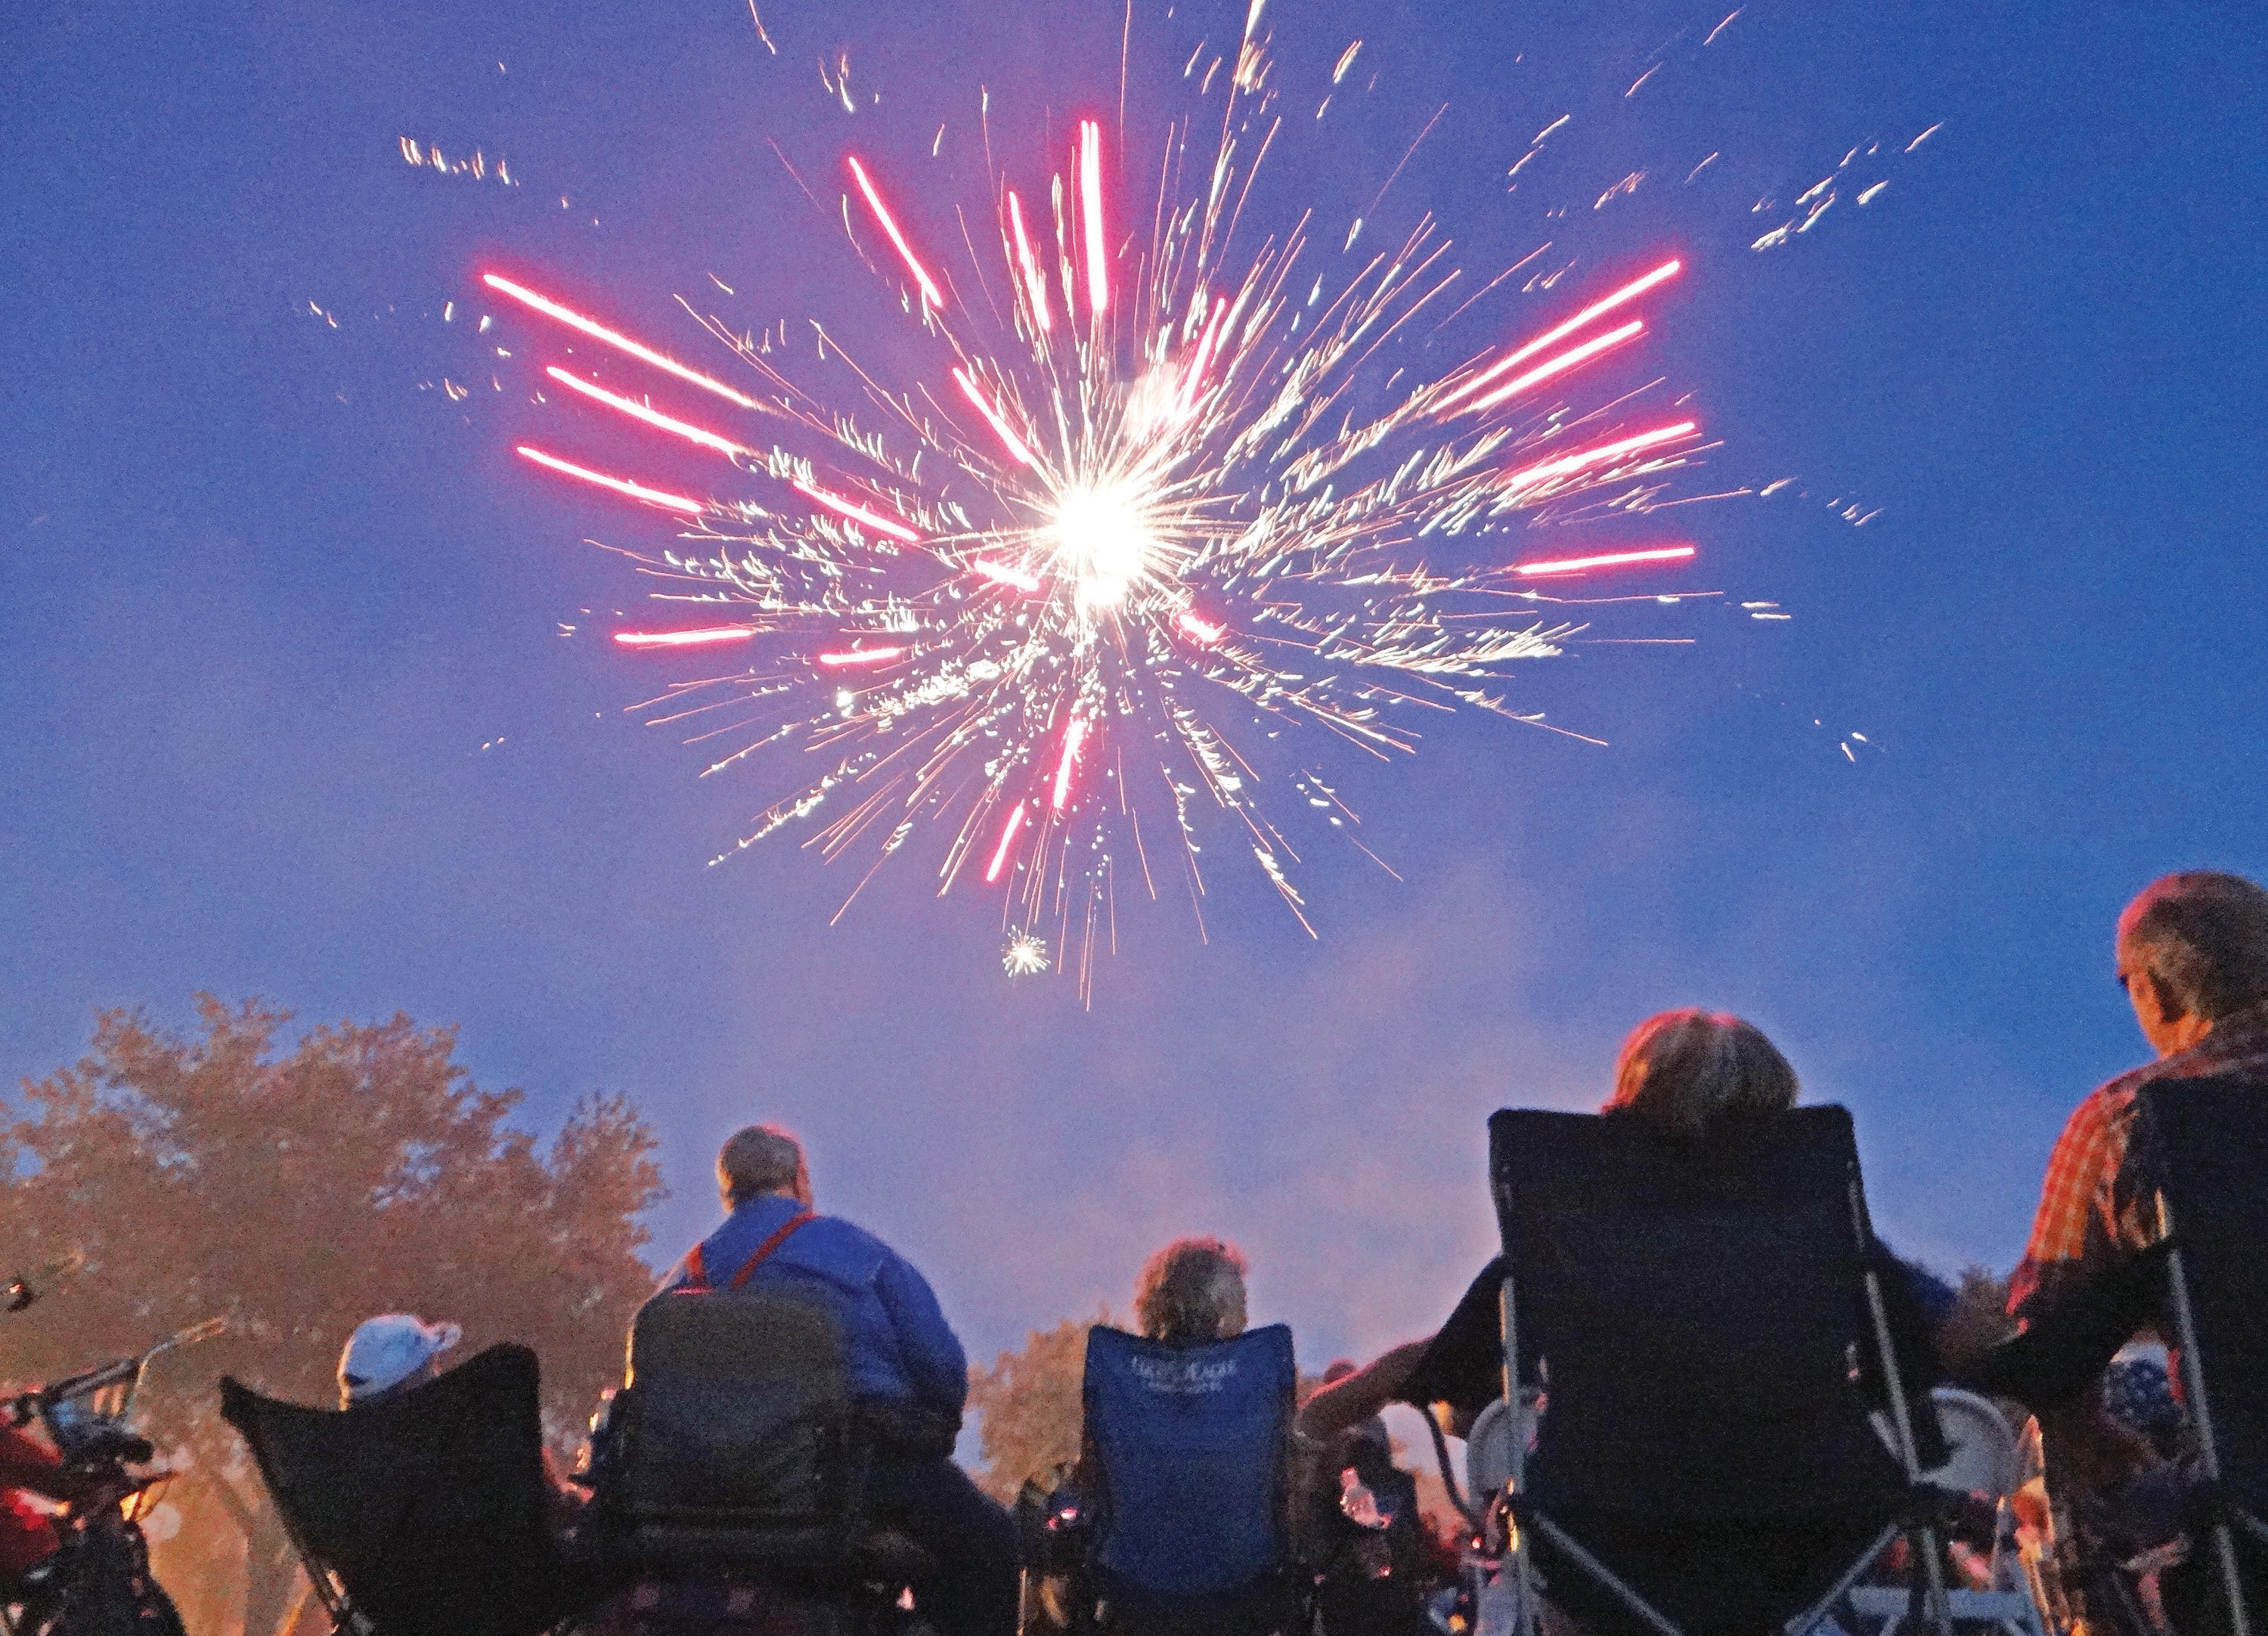 Come out and enjoy an evening of free food, entertainment and fireworks at Jourdanton's American Pride Day at Jourdanton City Park. The event is scheduled from 5 – 10 p.m., Friday, July 4th.